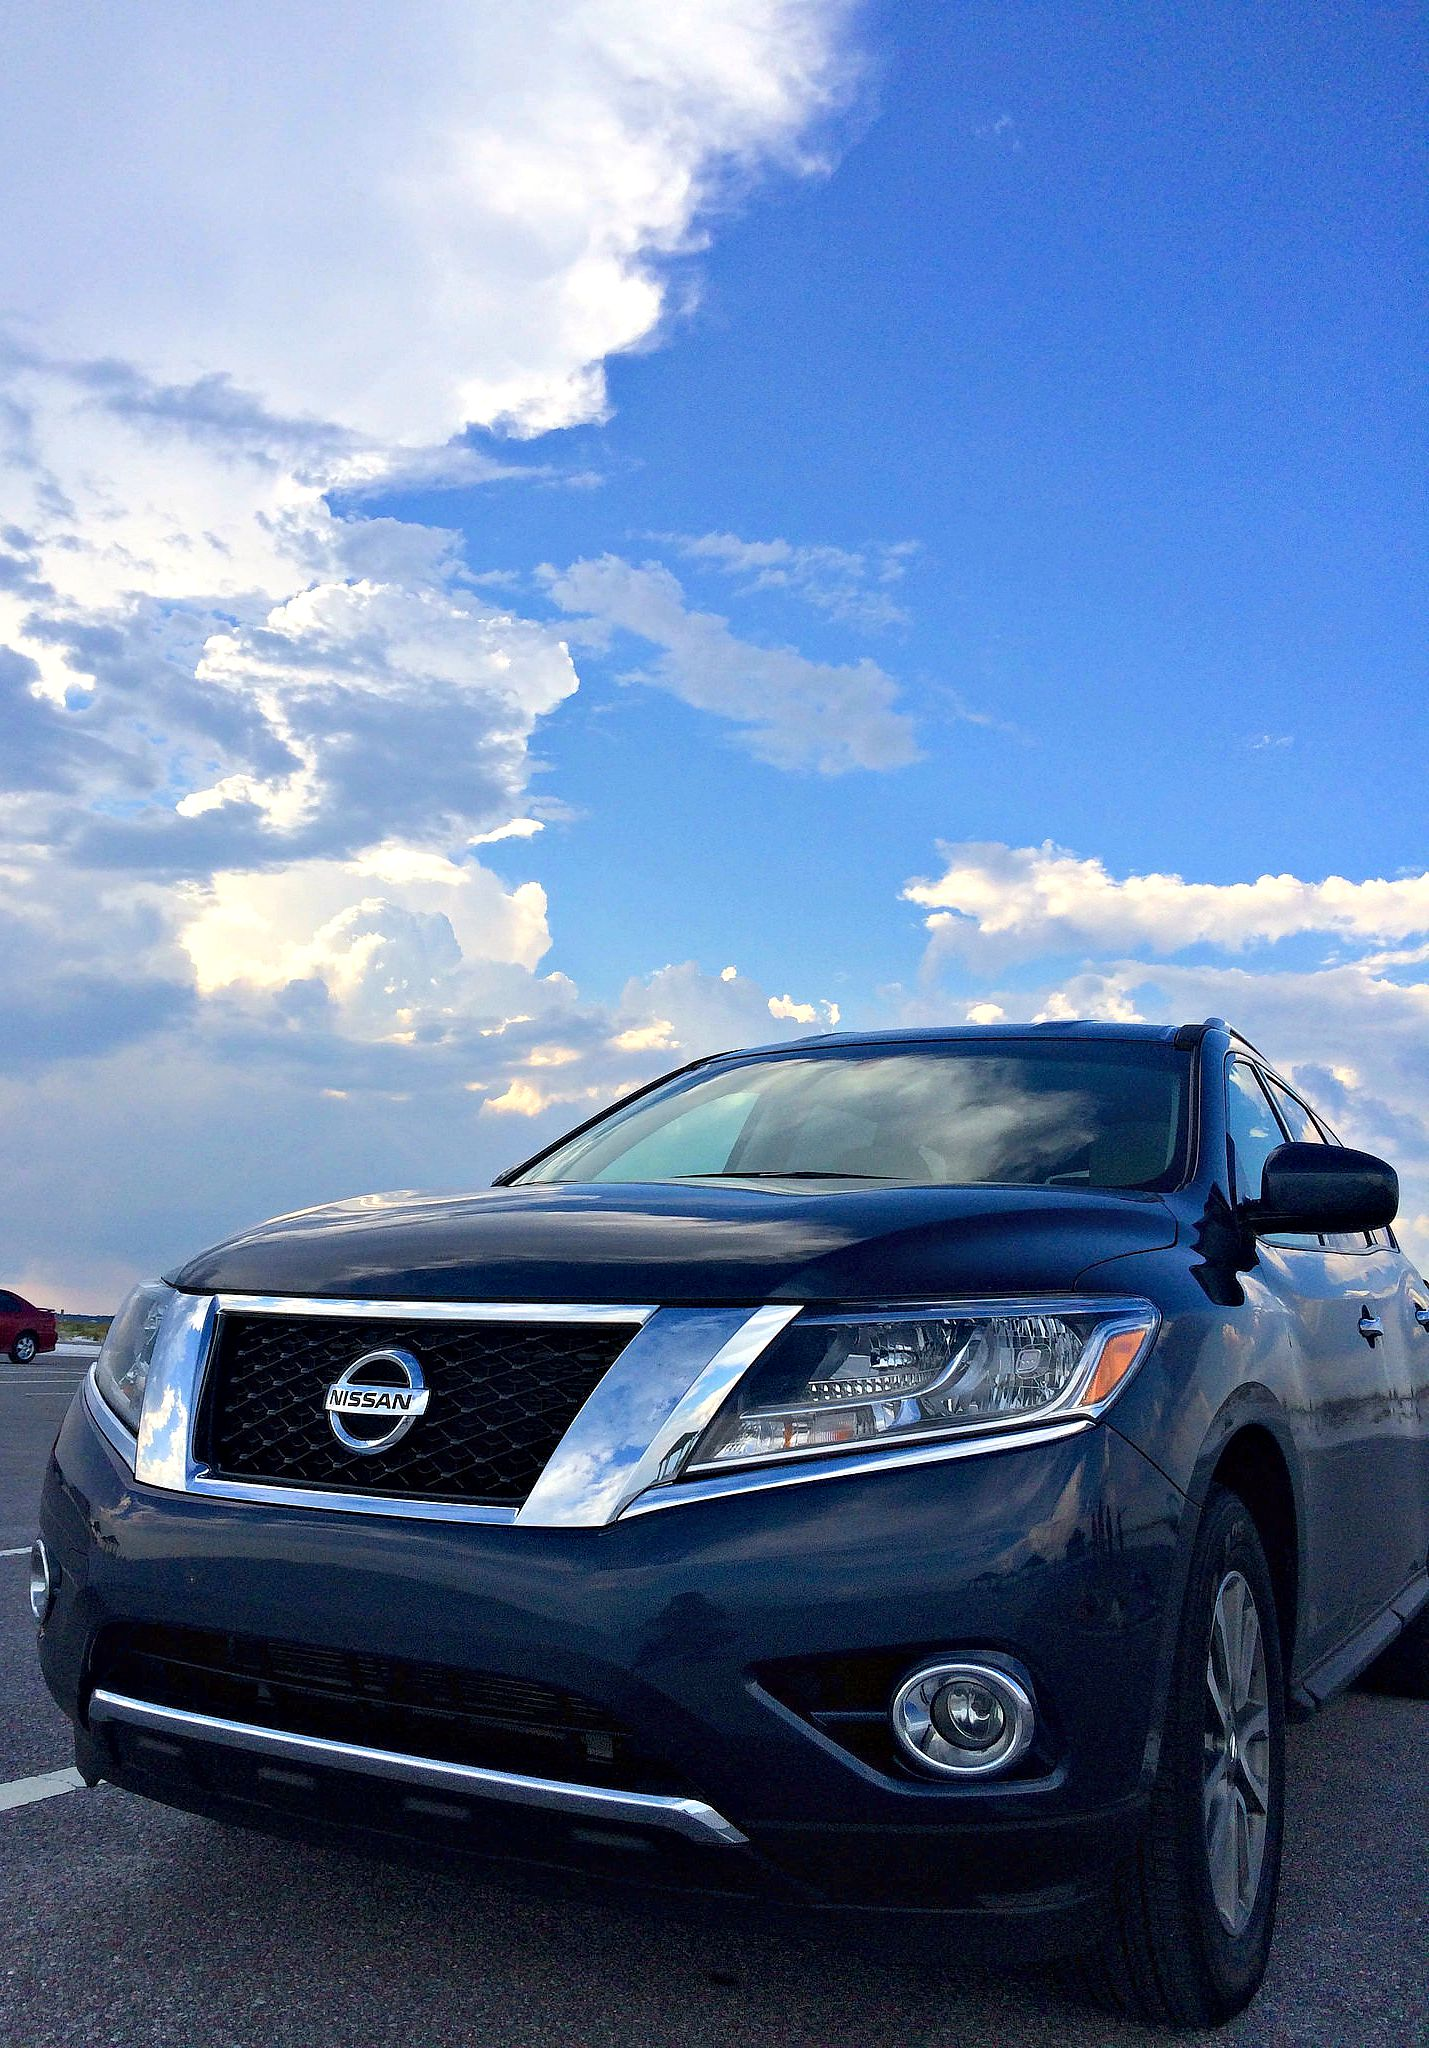 nissan pathfinder test drive to the alabama gulf coast. Black Bedroom Furniture Sets. Home Design Ideas